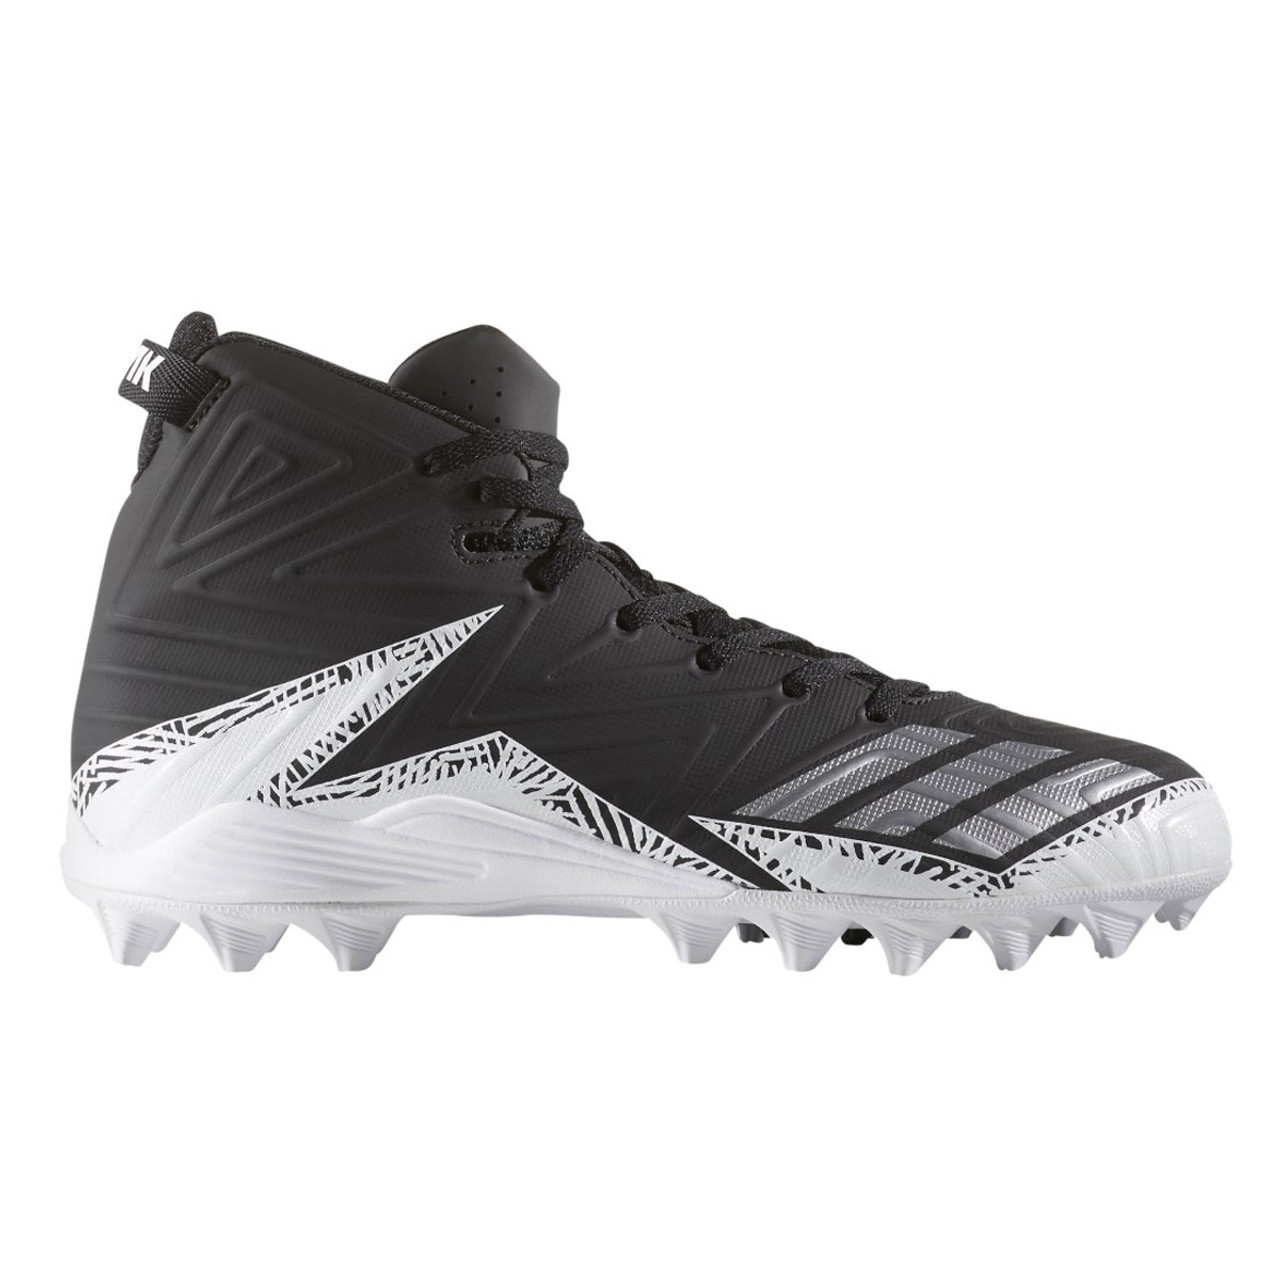 a30405899 Adidas Freak Mid MD Senior Football Lacrosse Cleats BY3874 - Black Silver  White